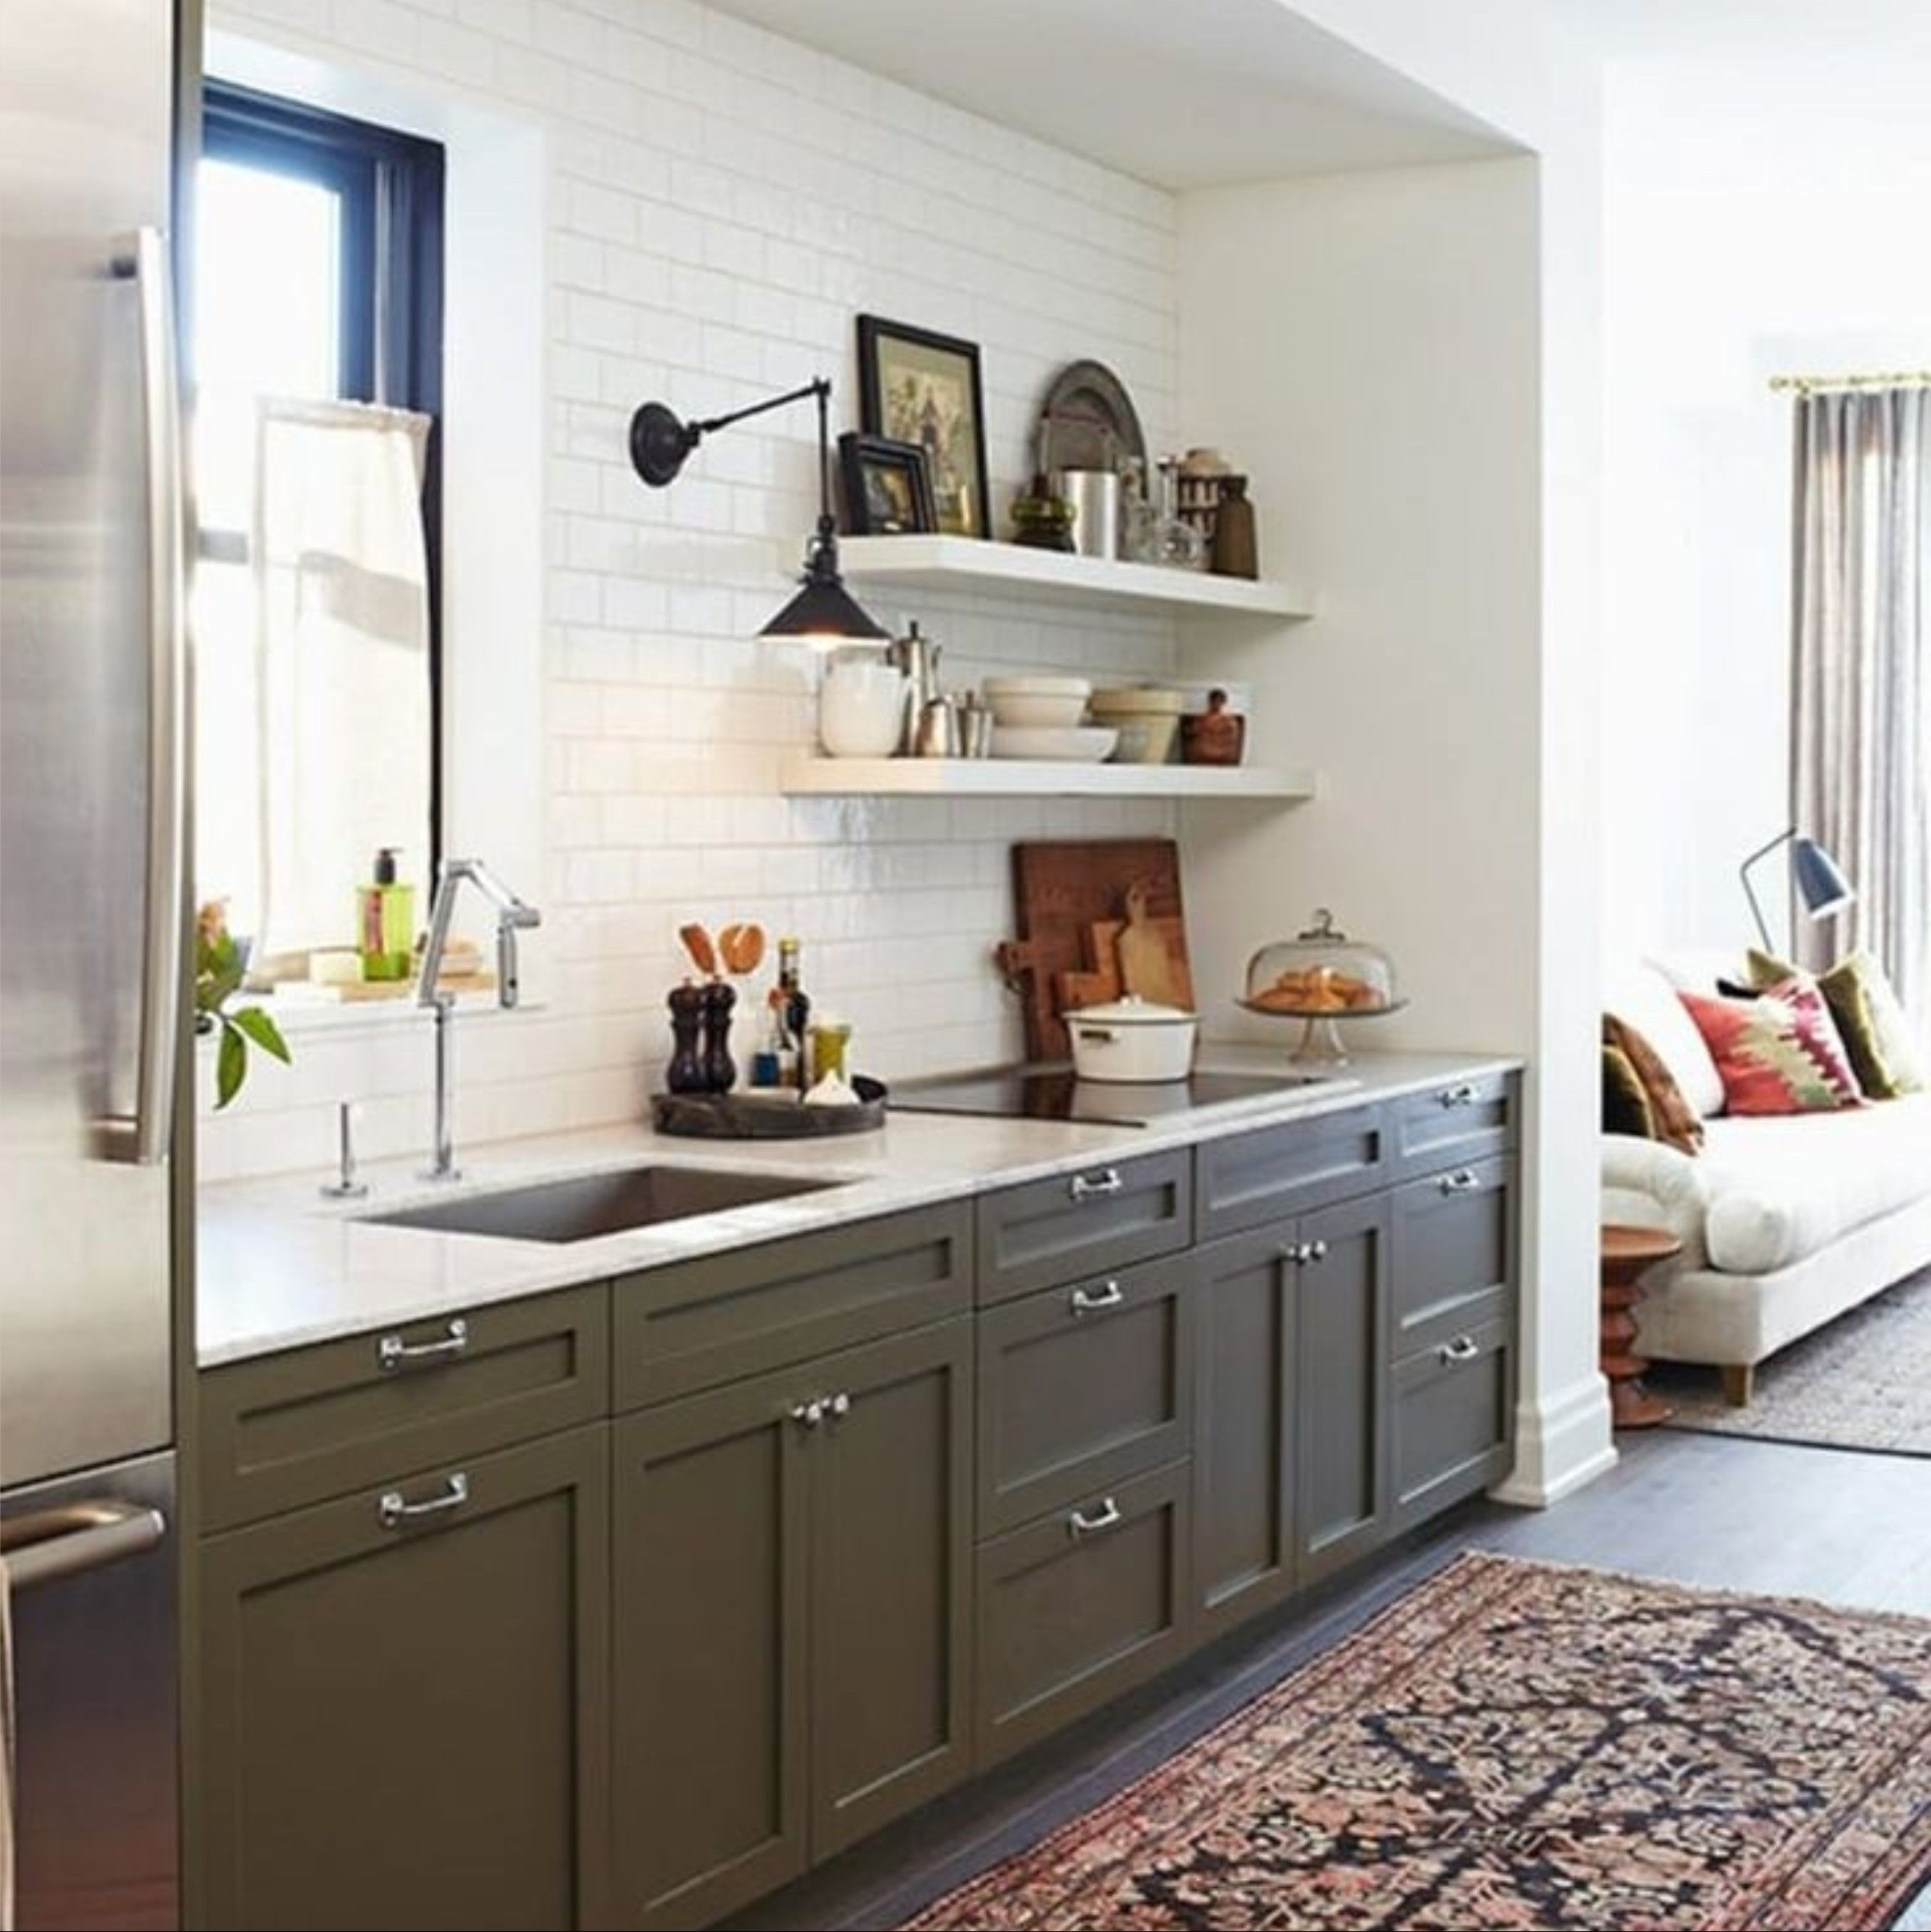 4 Earth Tones to Make Your Kitchen More Grounded | Green ...